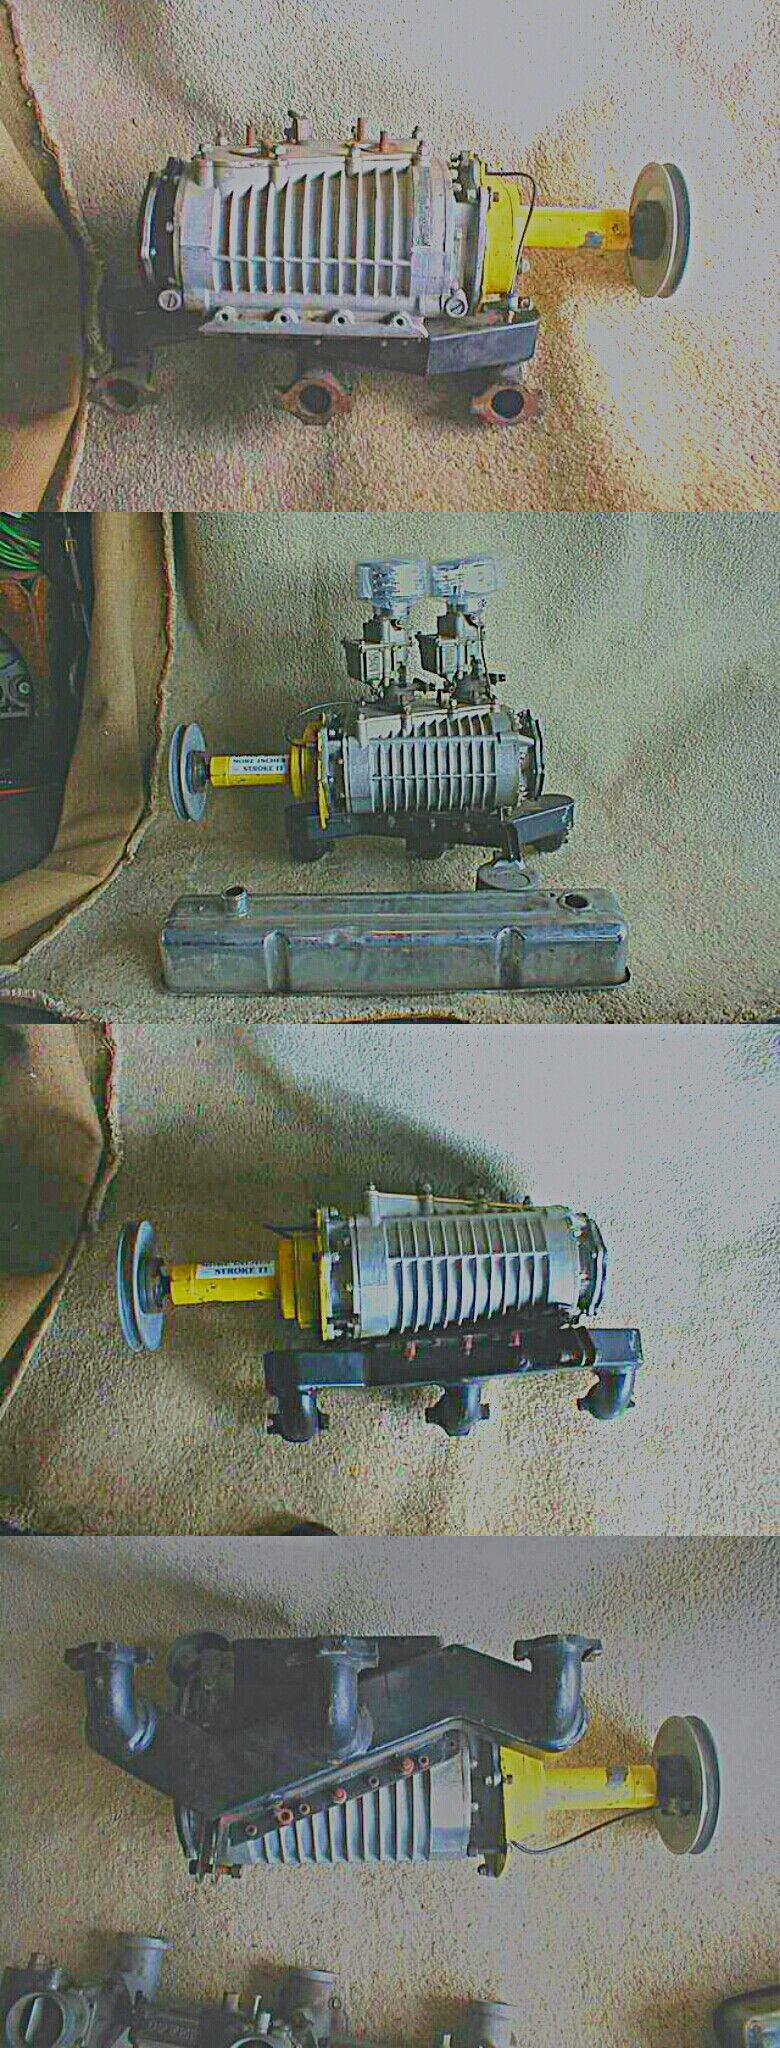 medium resolution of supercharger for a inline 6 cylinder chevrolet